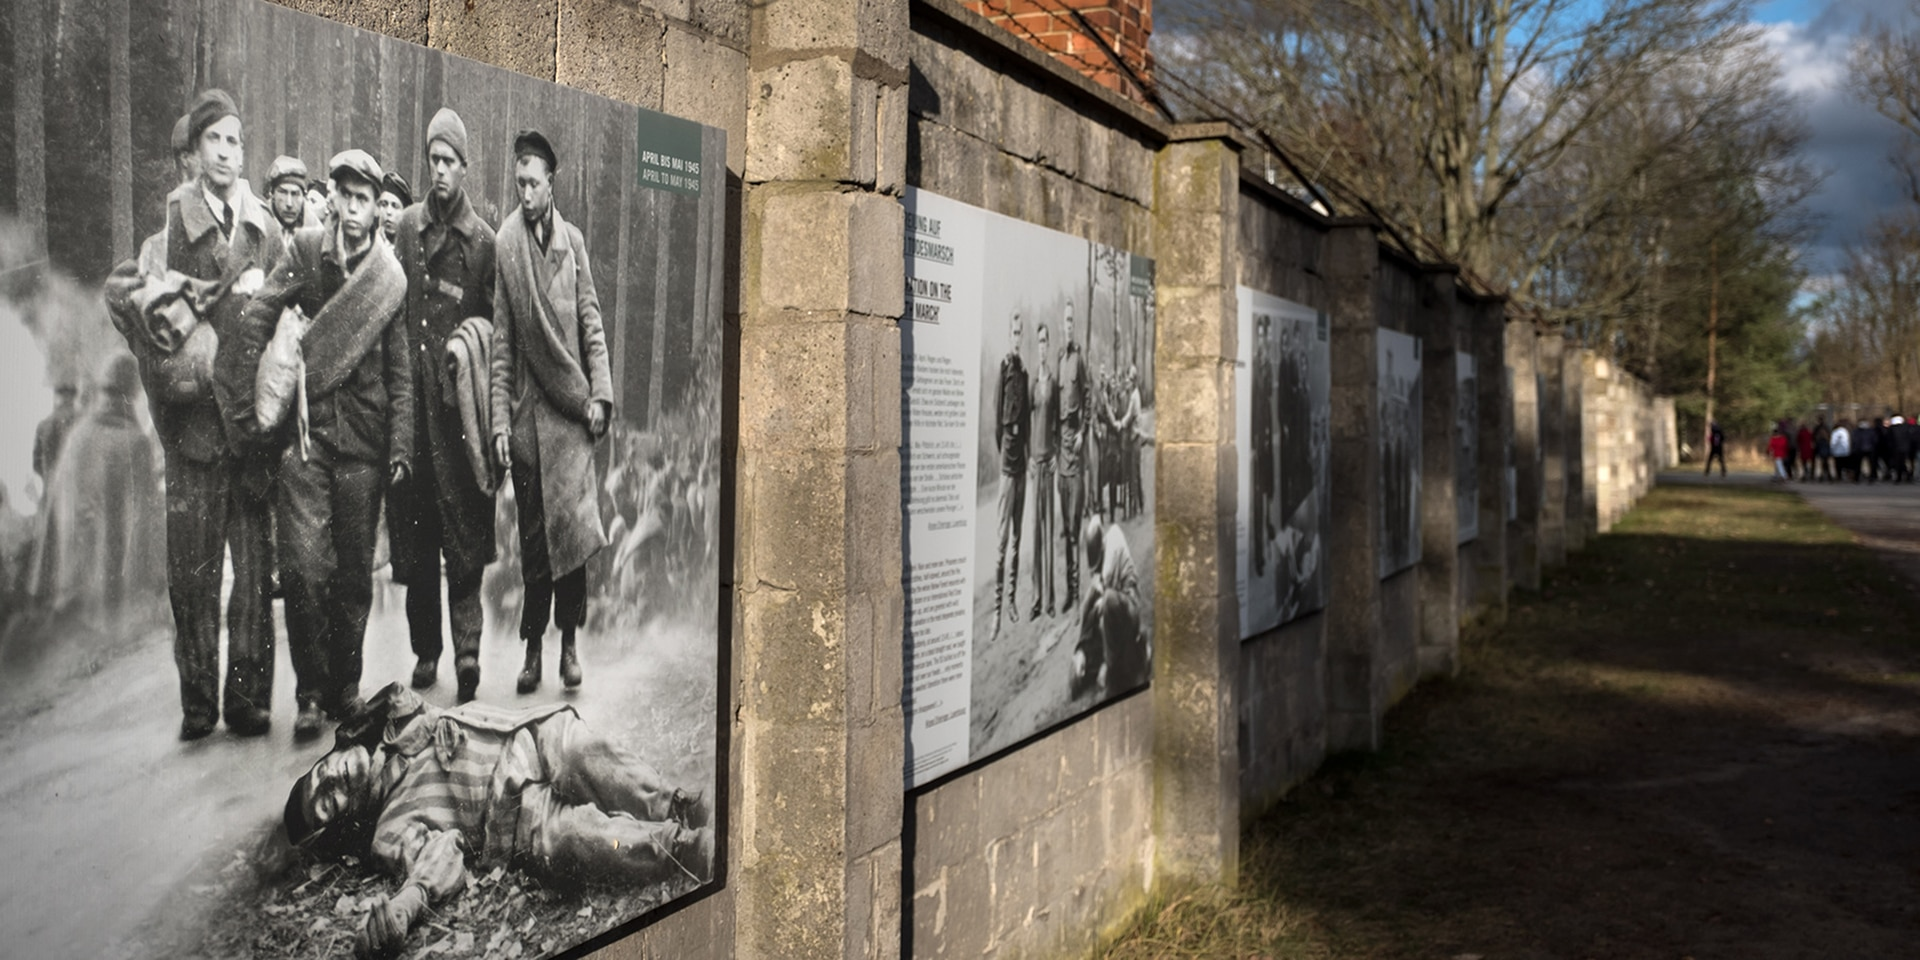 Wall at the Sachsenhausen Concentration Camp Memorial displaying pictures of the camp and information.